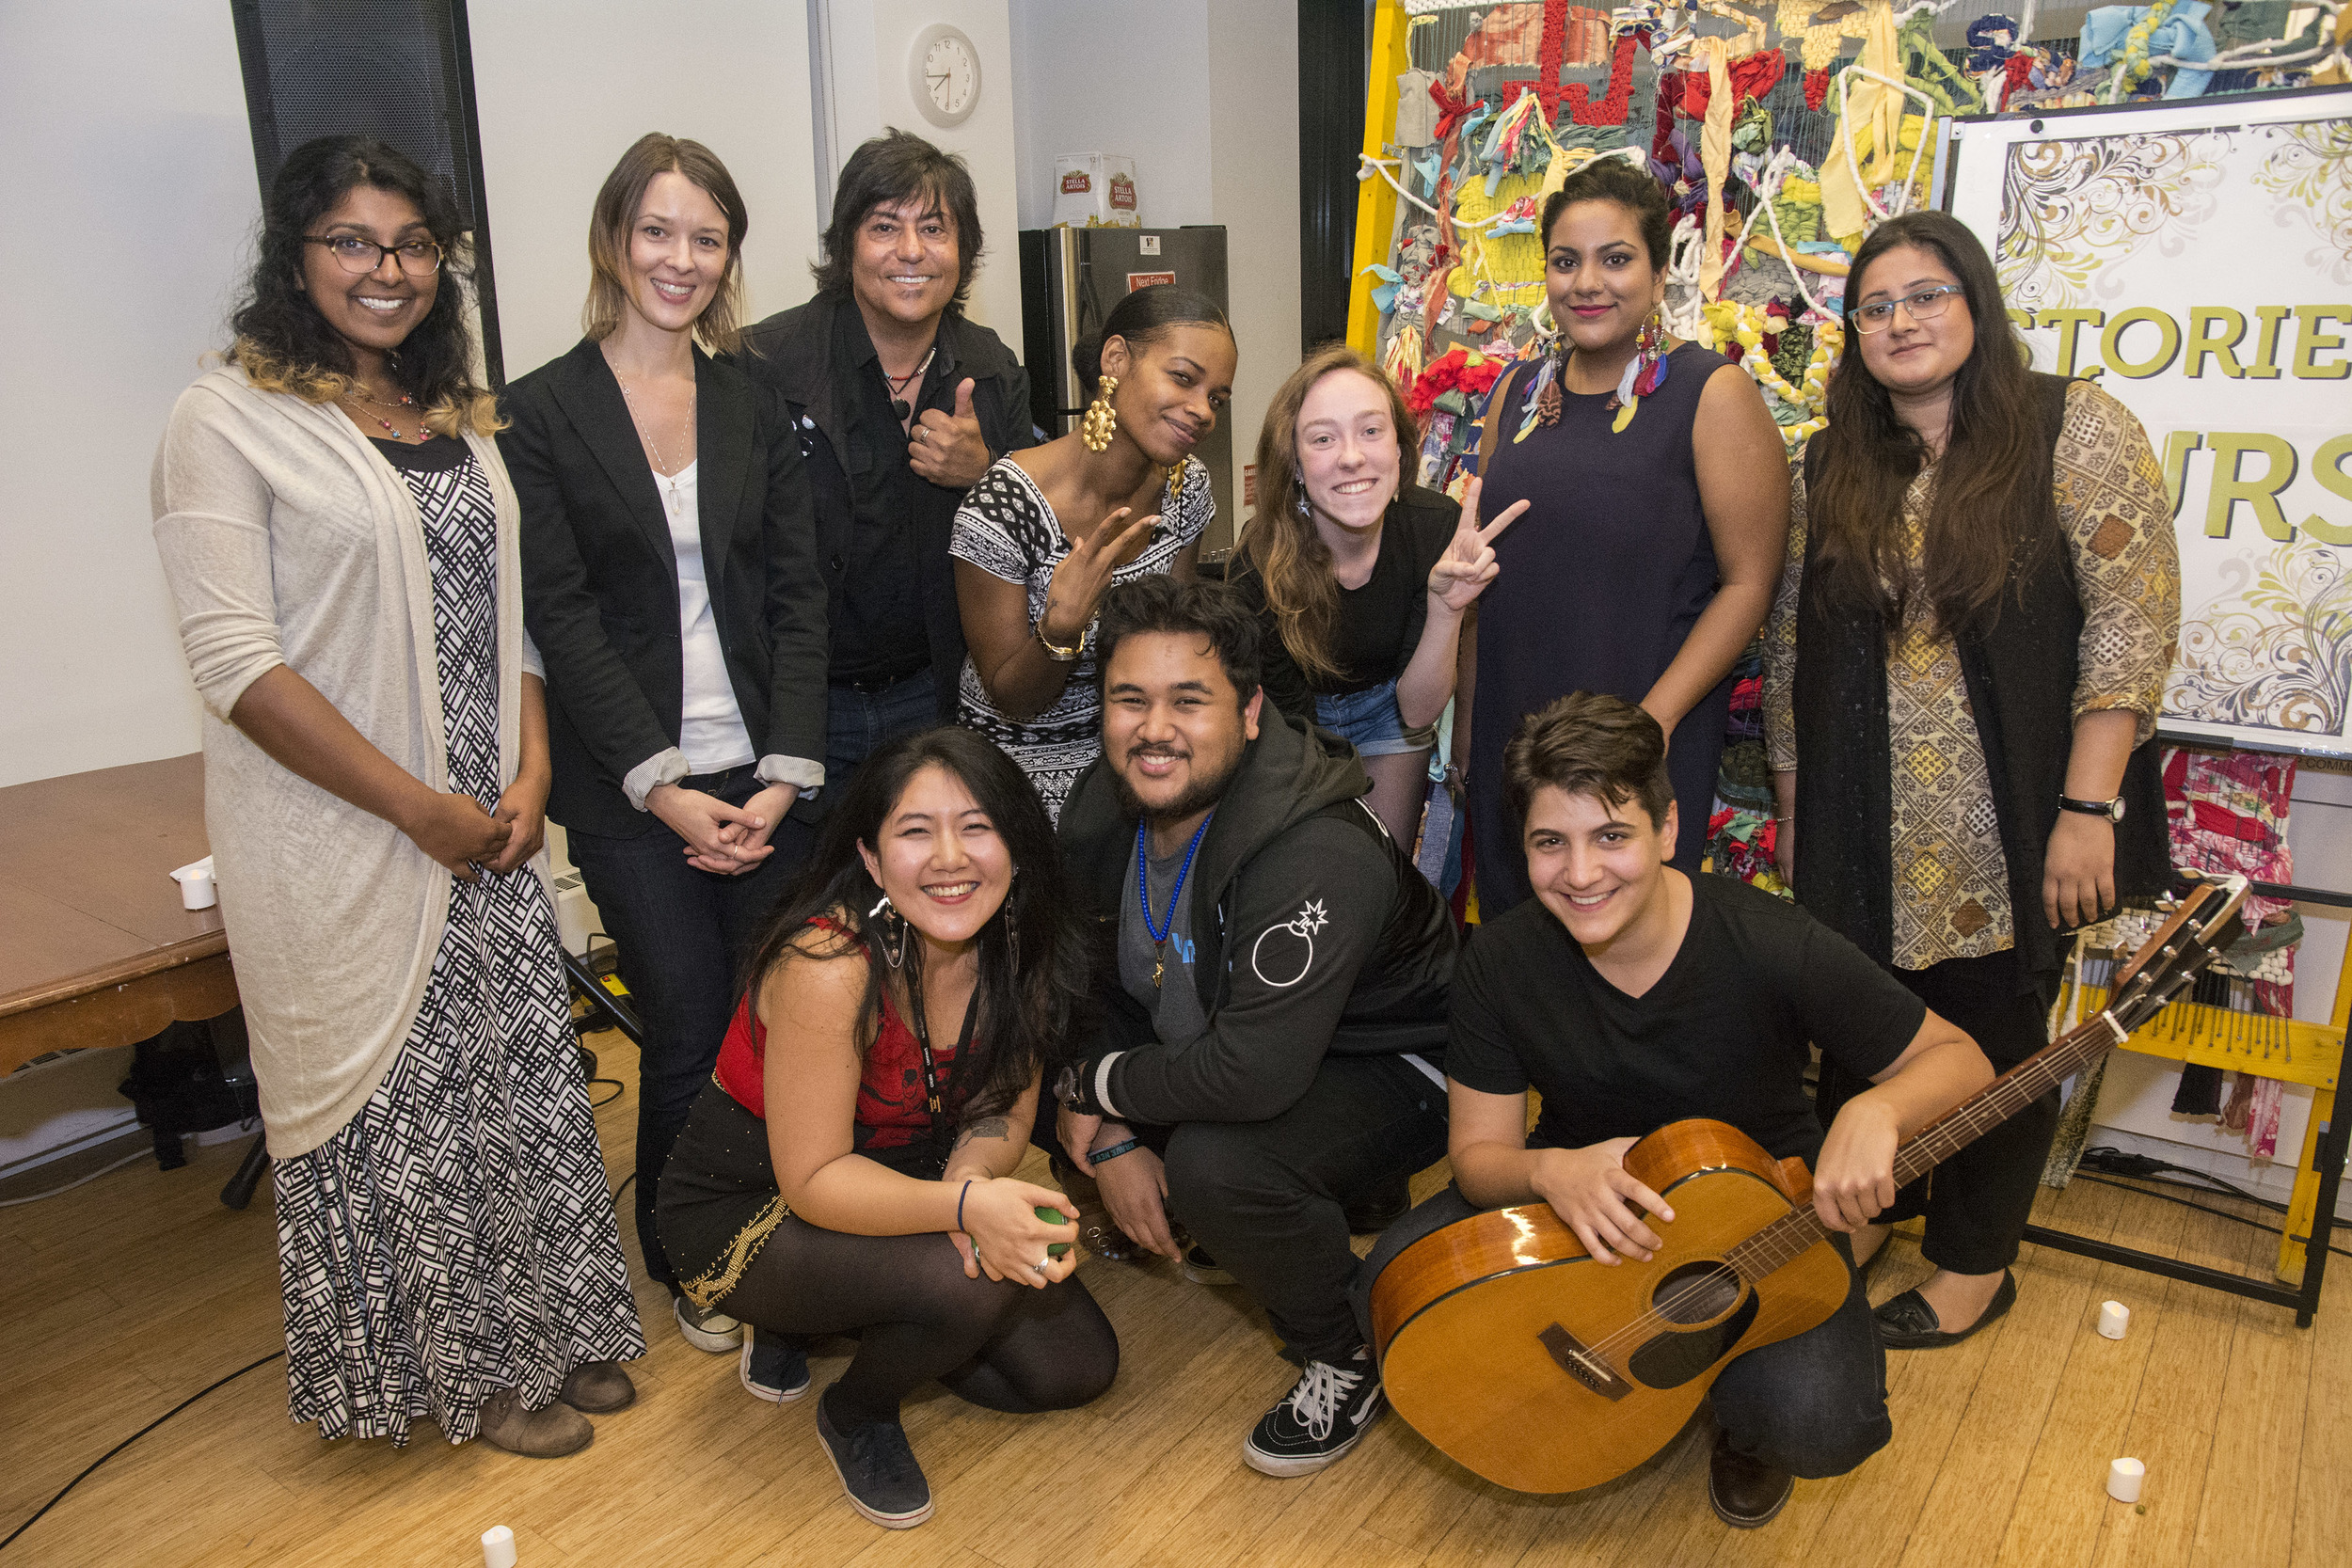 The awesome performers! From Left to Right:  Standing: Bandana Singh, Ilaneet Goren, Pol Carlos, Alicia Cinnamon, Twoey Gray, Koel, Maheen Hyder  Kneeling: Erin Kang, Berma, Sare D'Alimonte